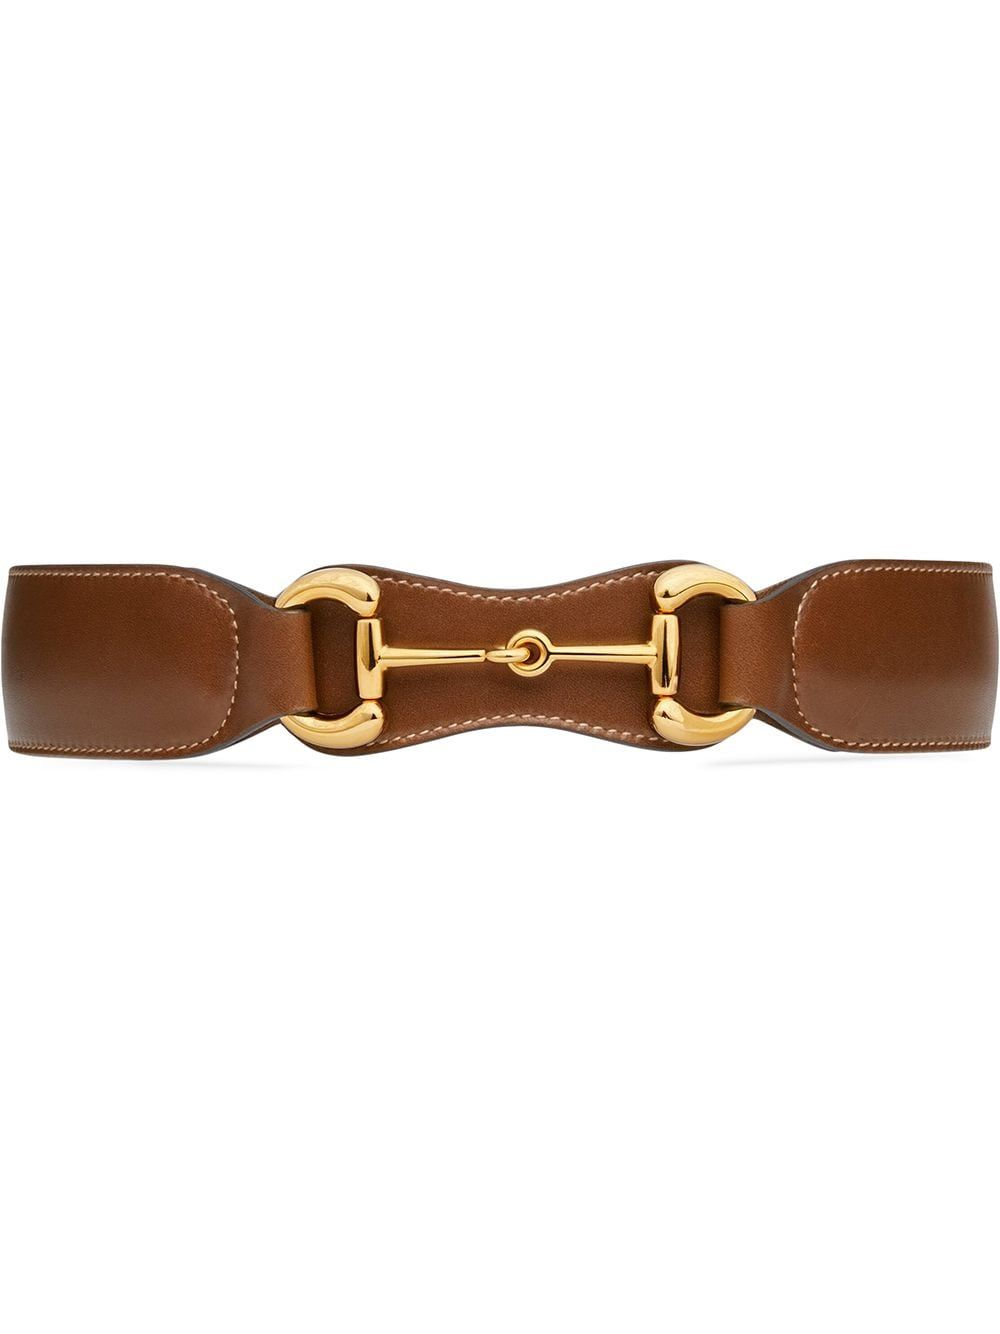 Gucci Gucci 1955 Horsebit Belt Farfetch In 2020 Womens Leather Belt Gucci Brown Leather Belt